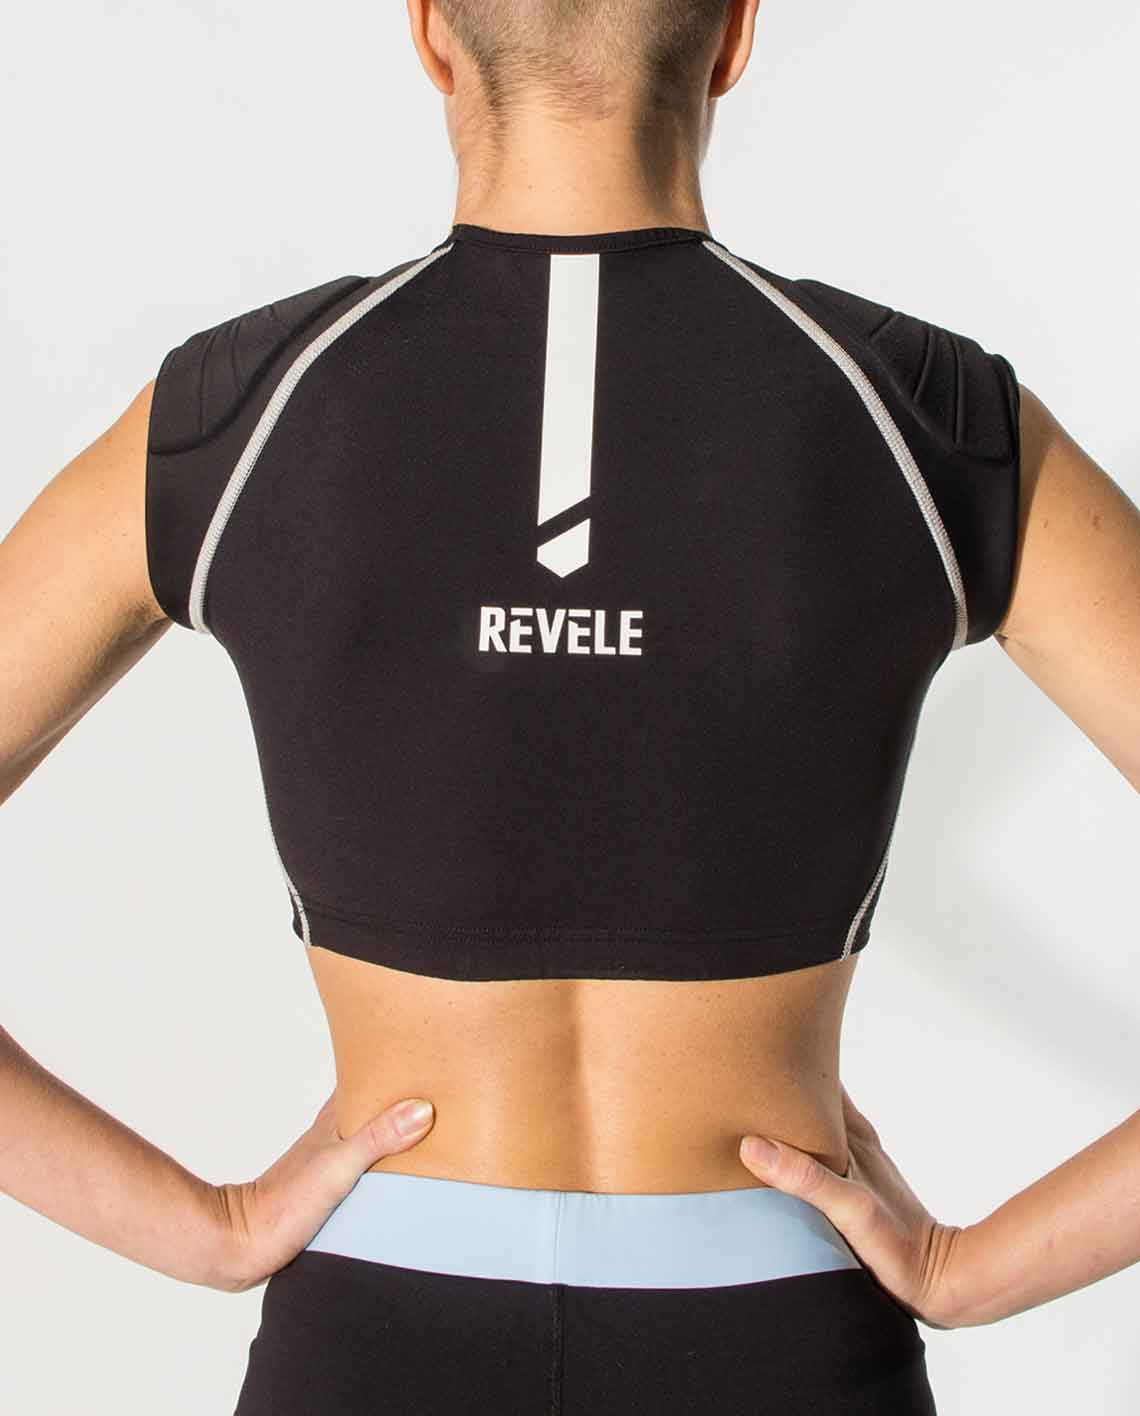 soft chest and shoulders protection - the Revelia